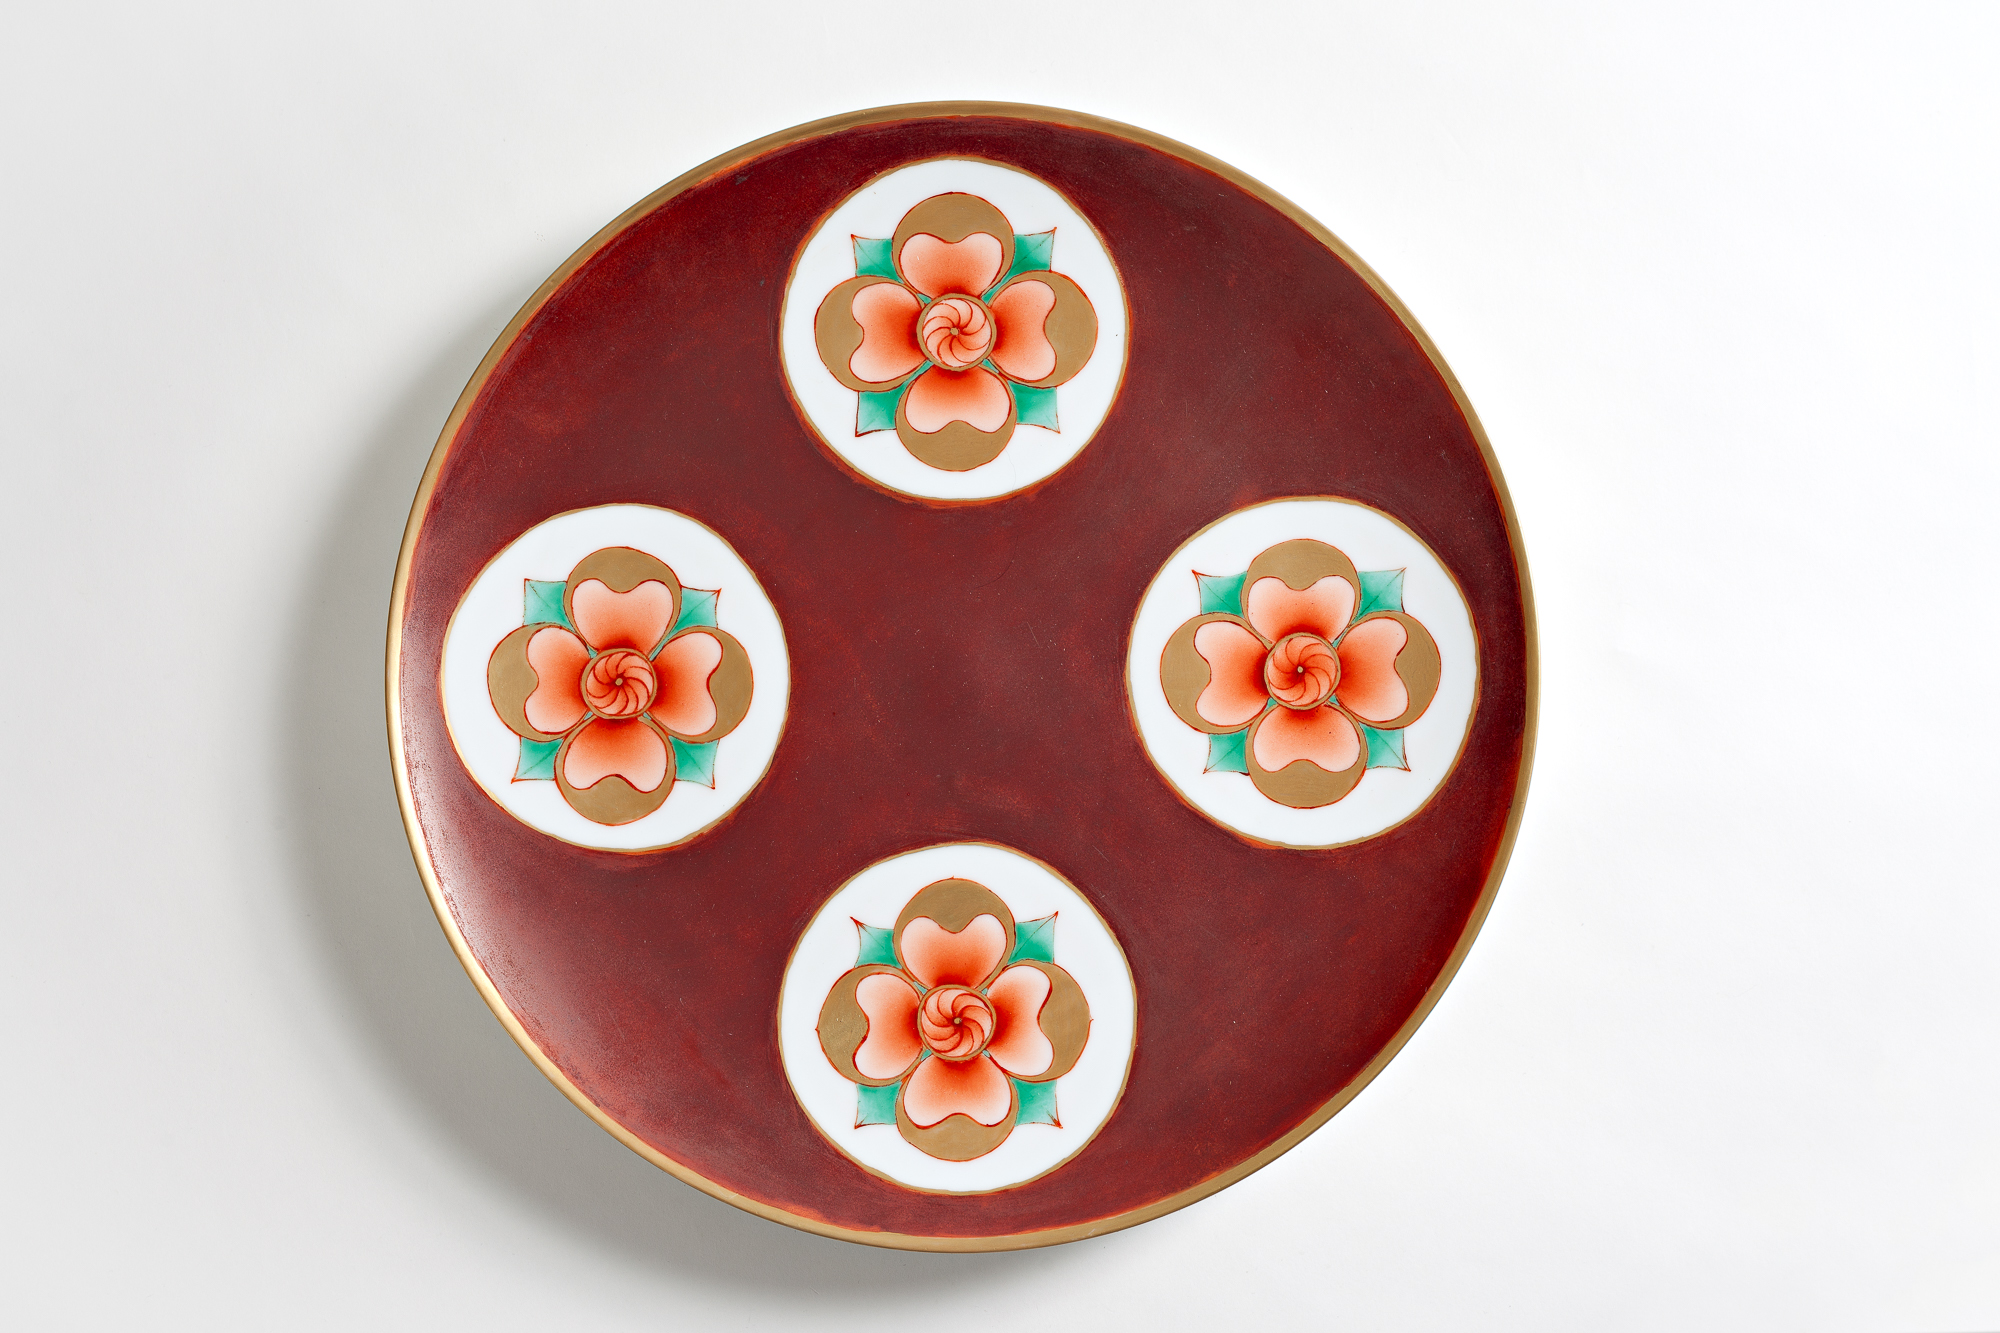 Porcelain Plate with Flower Medallions